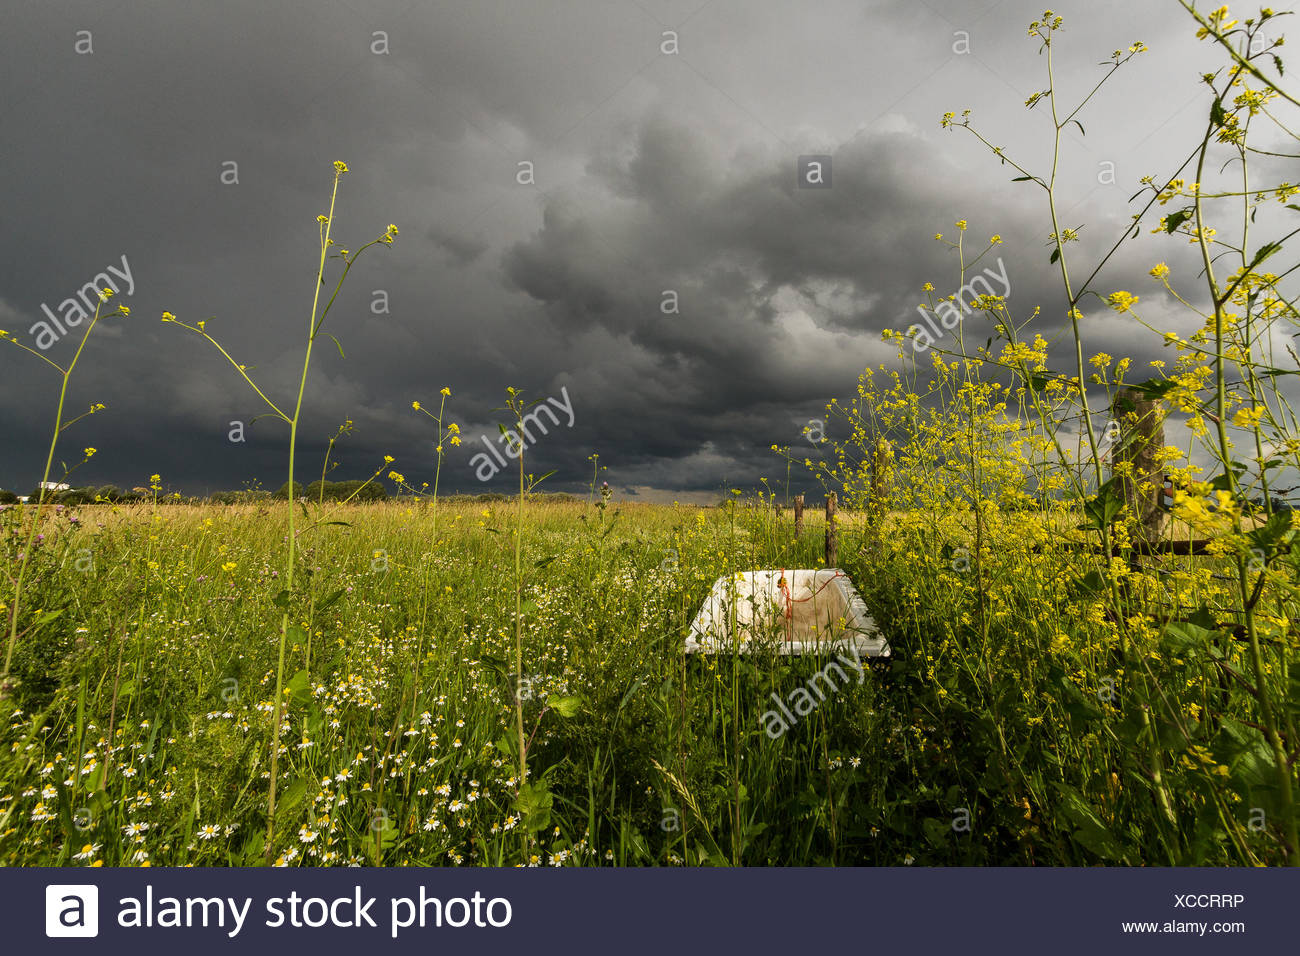 Abandoned bath tub in a field, Holland - Stock Image